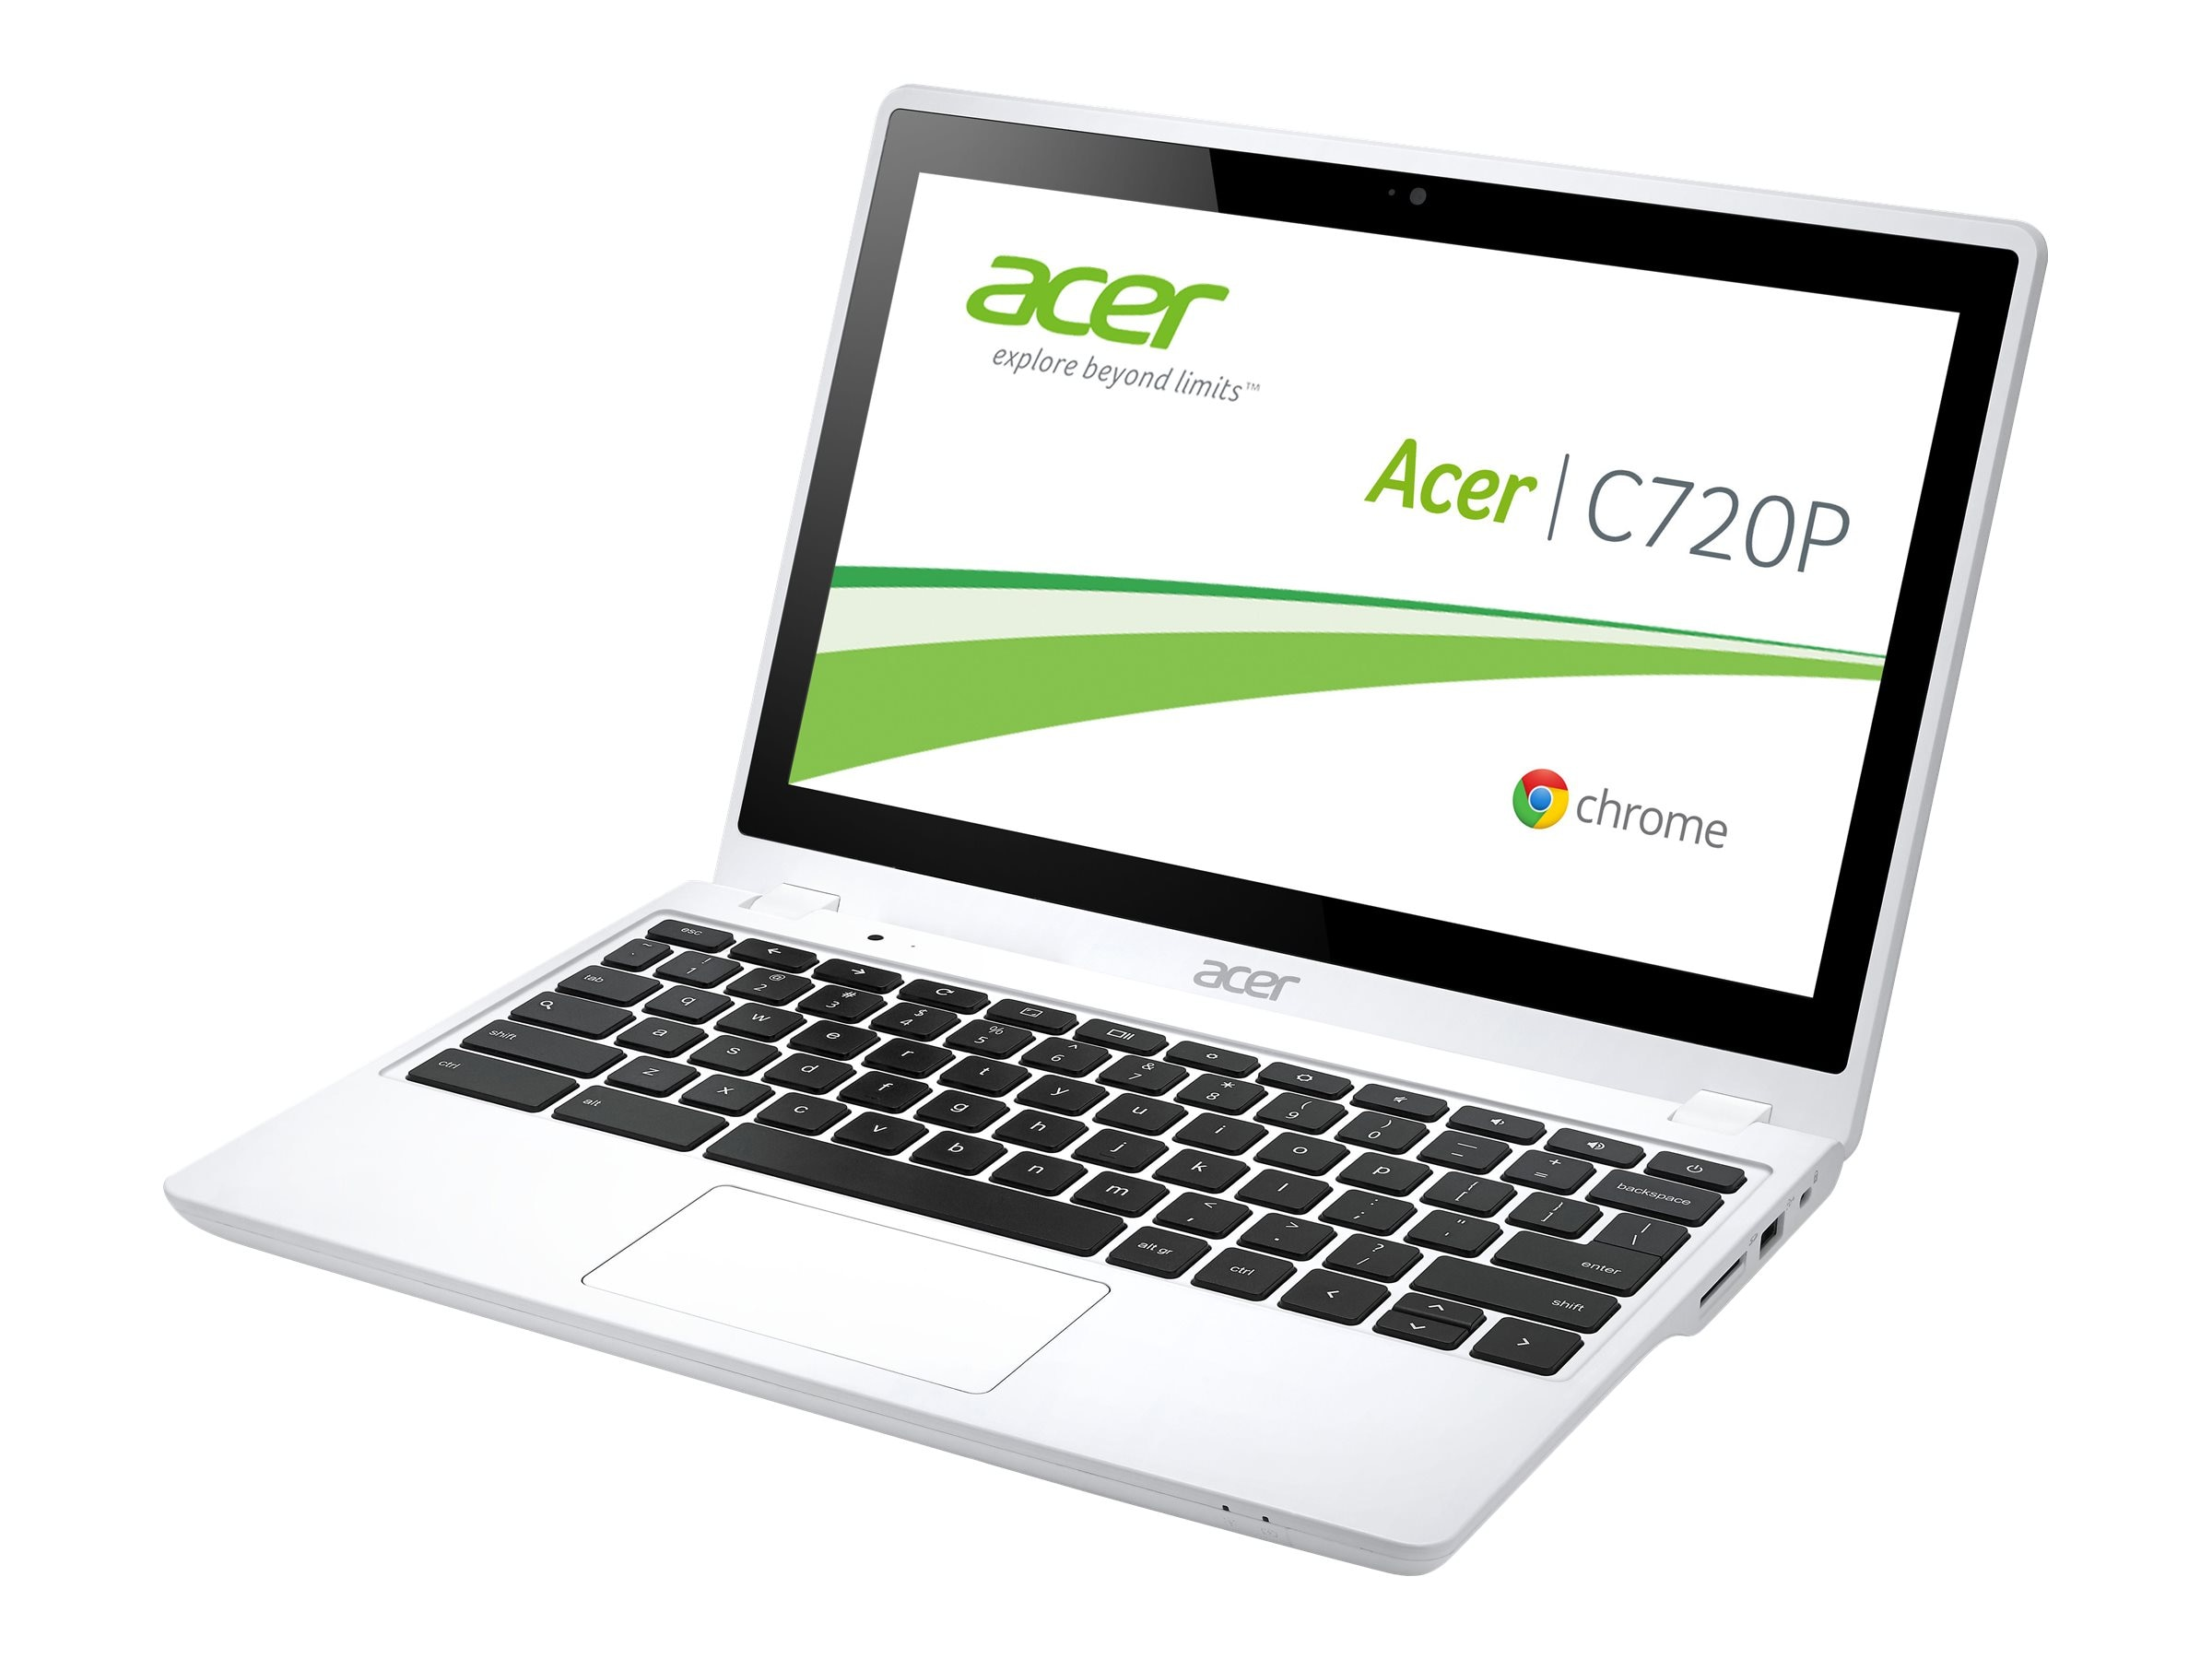 Acer Chromebook C720P-2457 1.4GHz Celeron 11.6in display, NX.MKEAA.005, 17376215, Notebooks